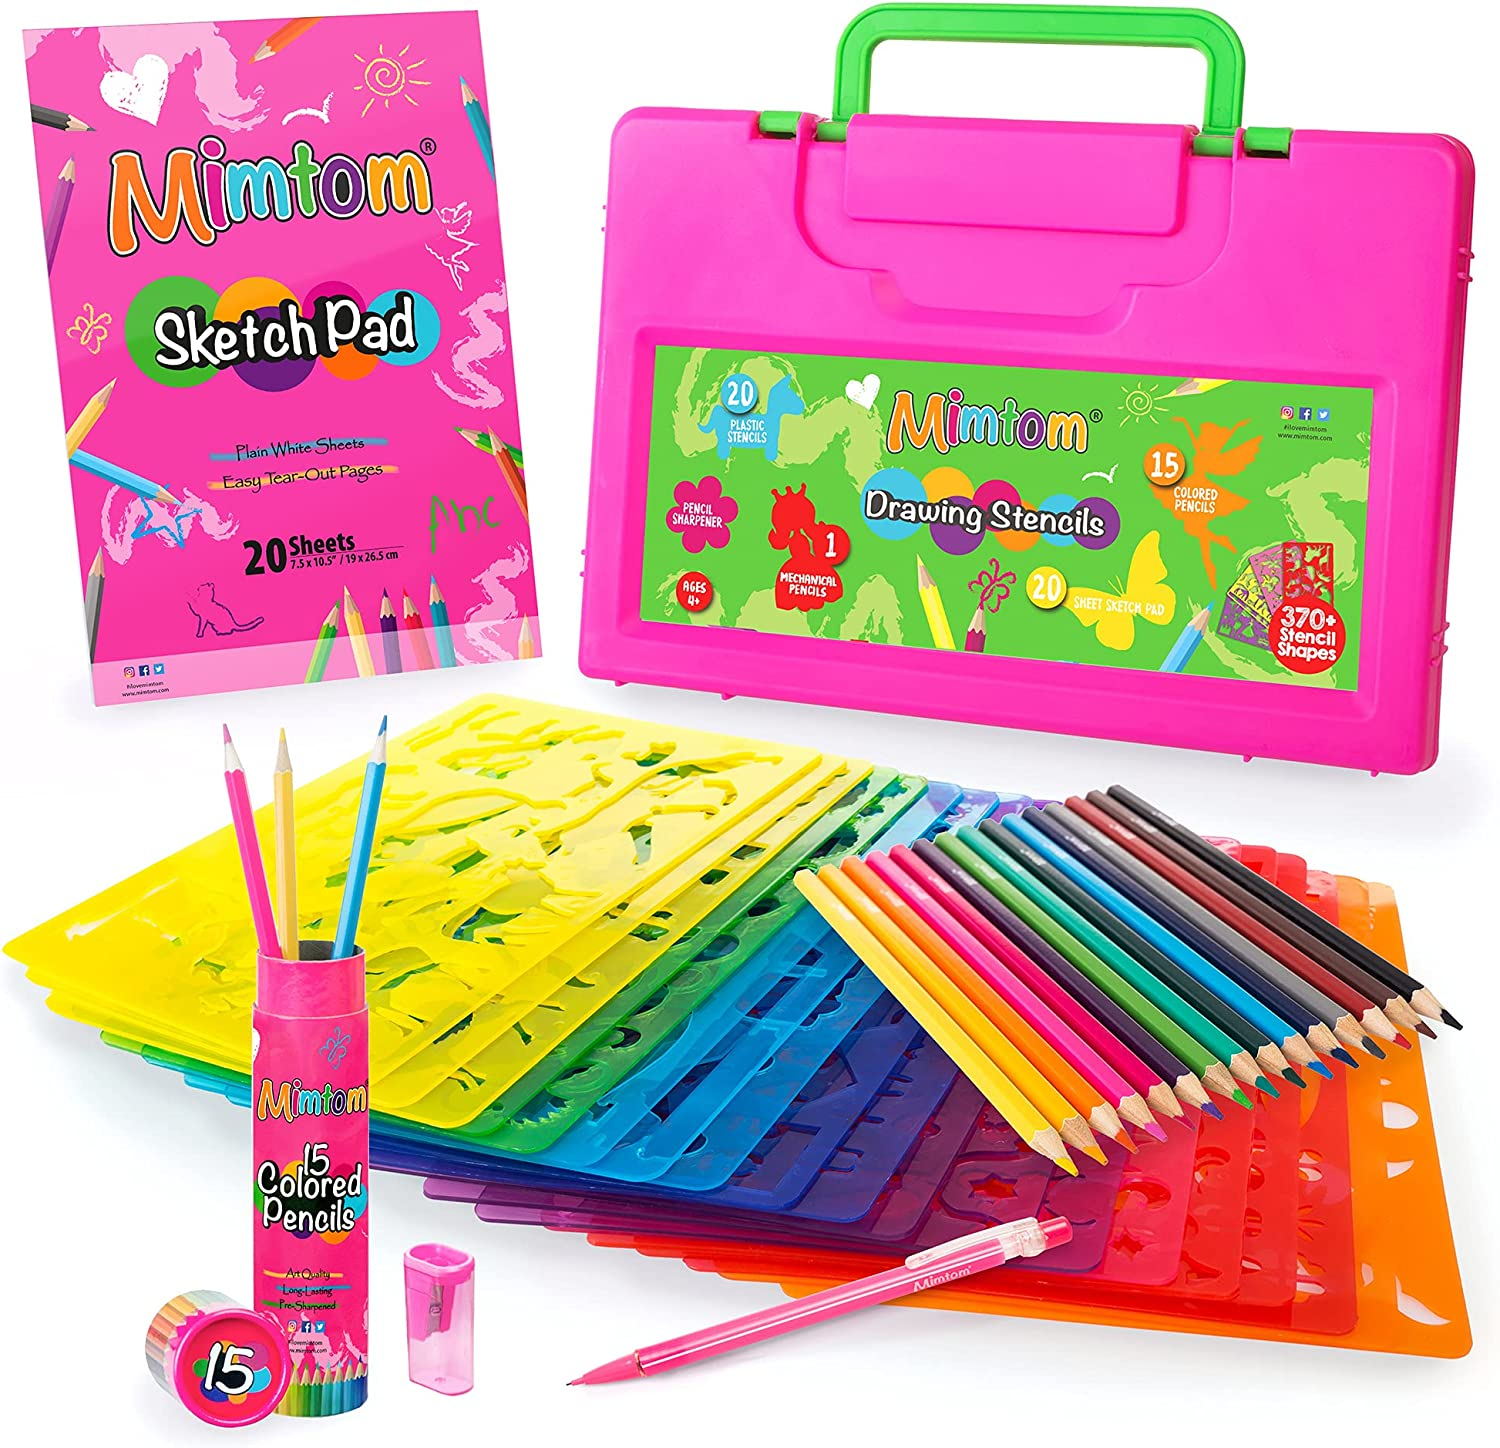 Mimtom Drawing Stencil Excellent Kit for Kids and Set wit Girls PC Art 58 Ranking TOP17